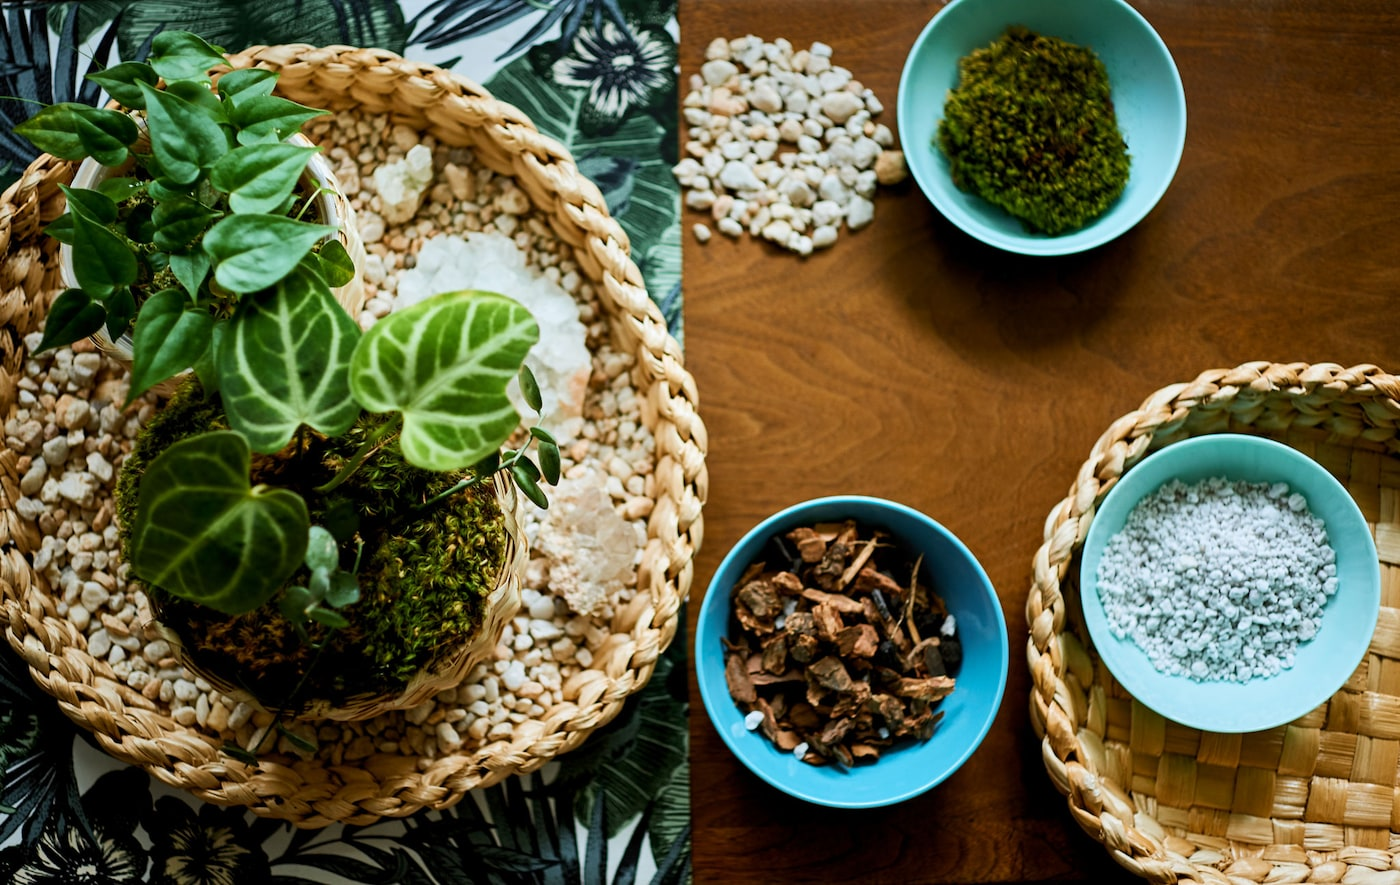 A table top with a strip of botanical print fabric, a tray with miniature plant display and bowls of potting materials.